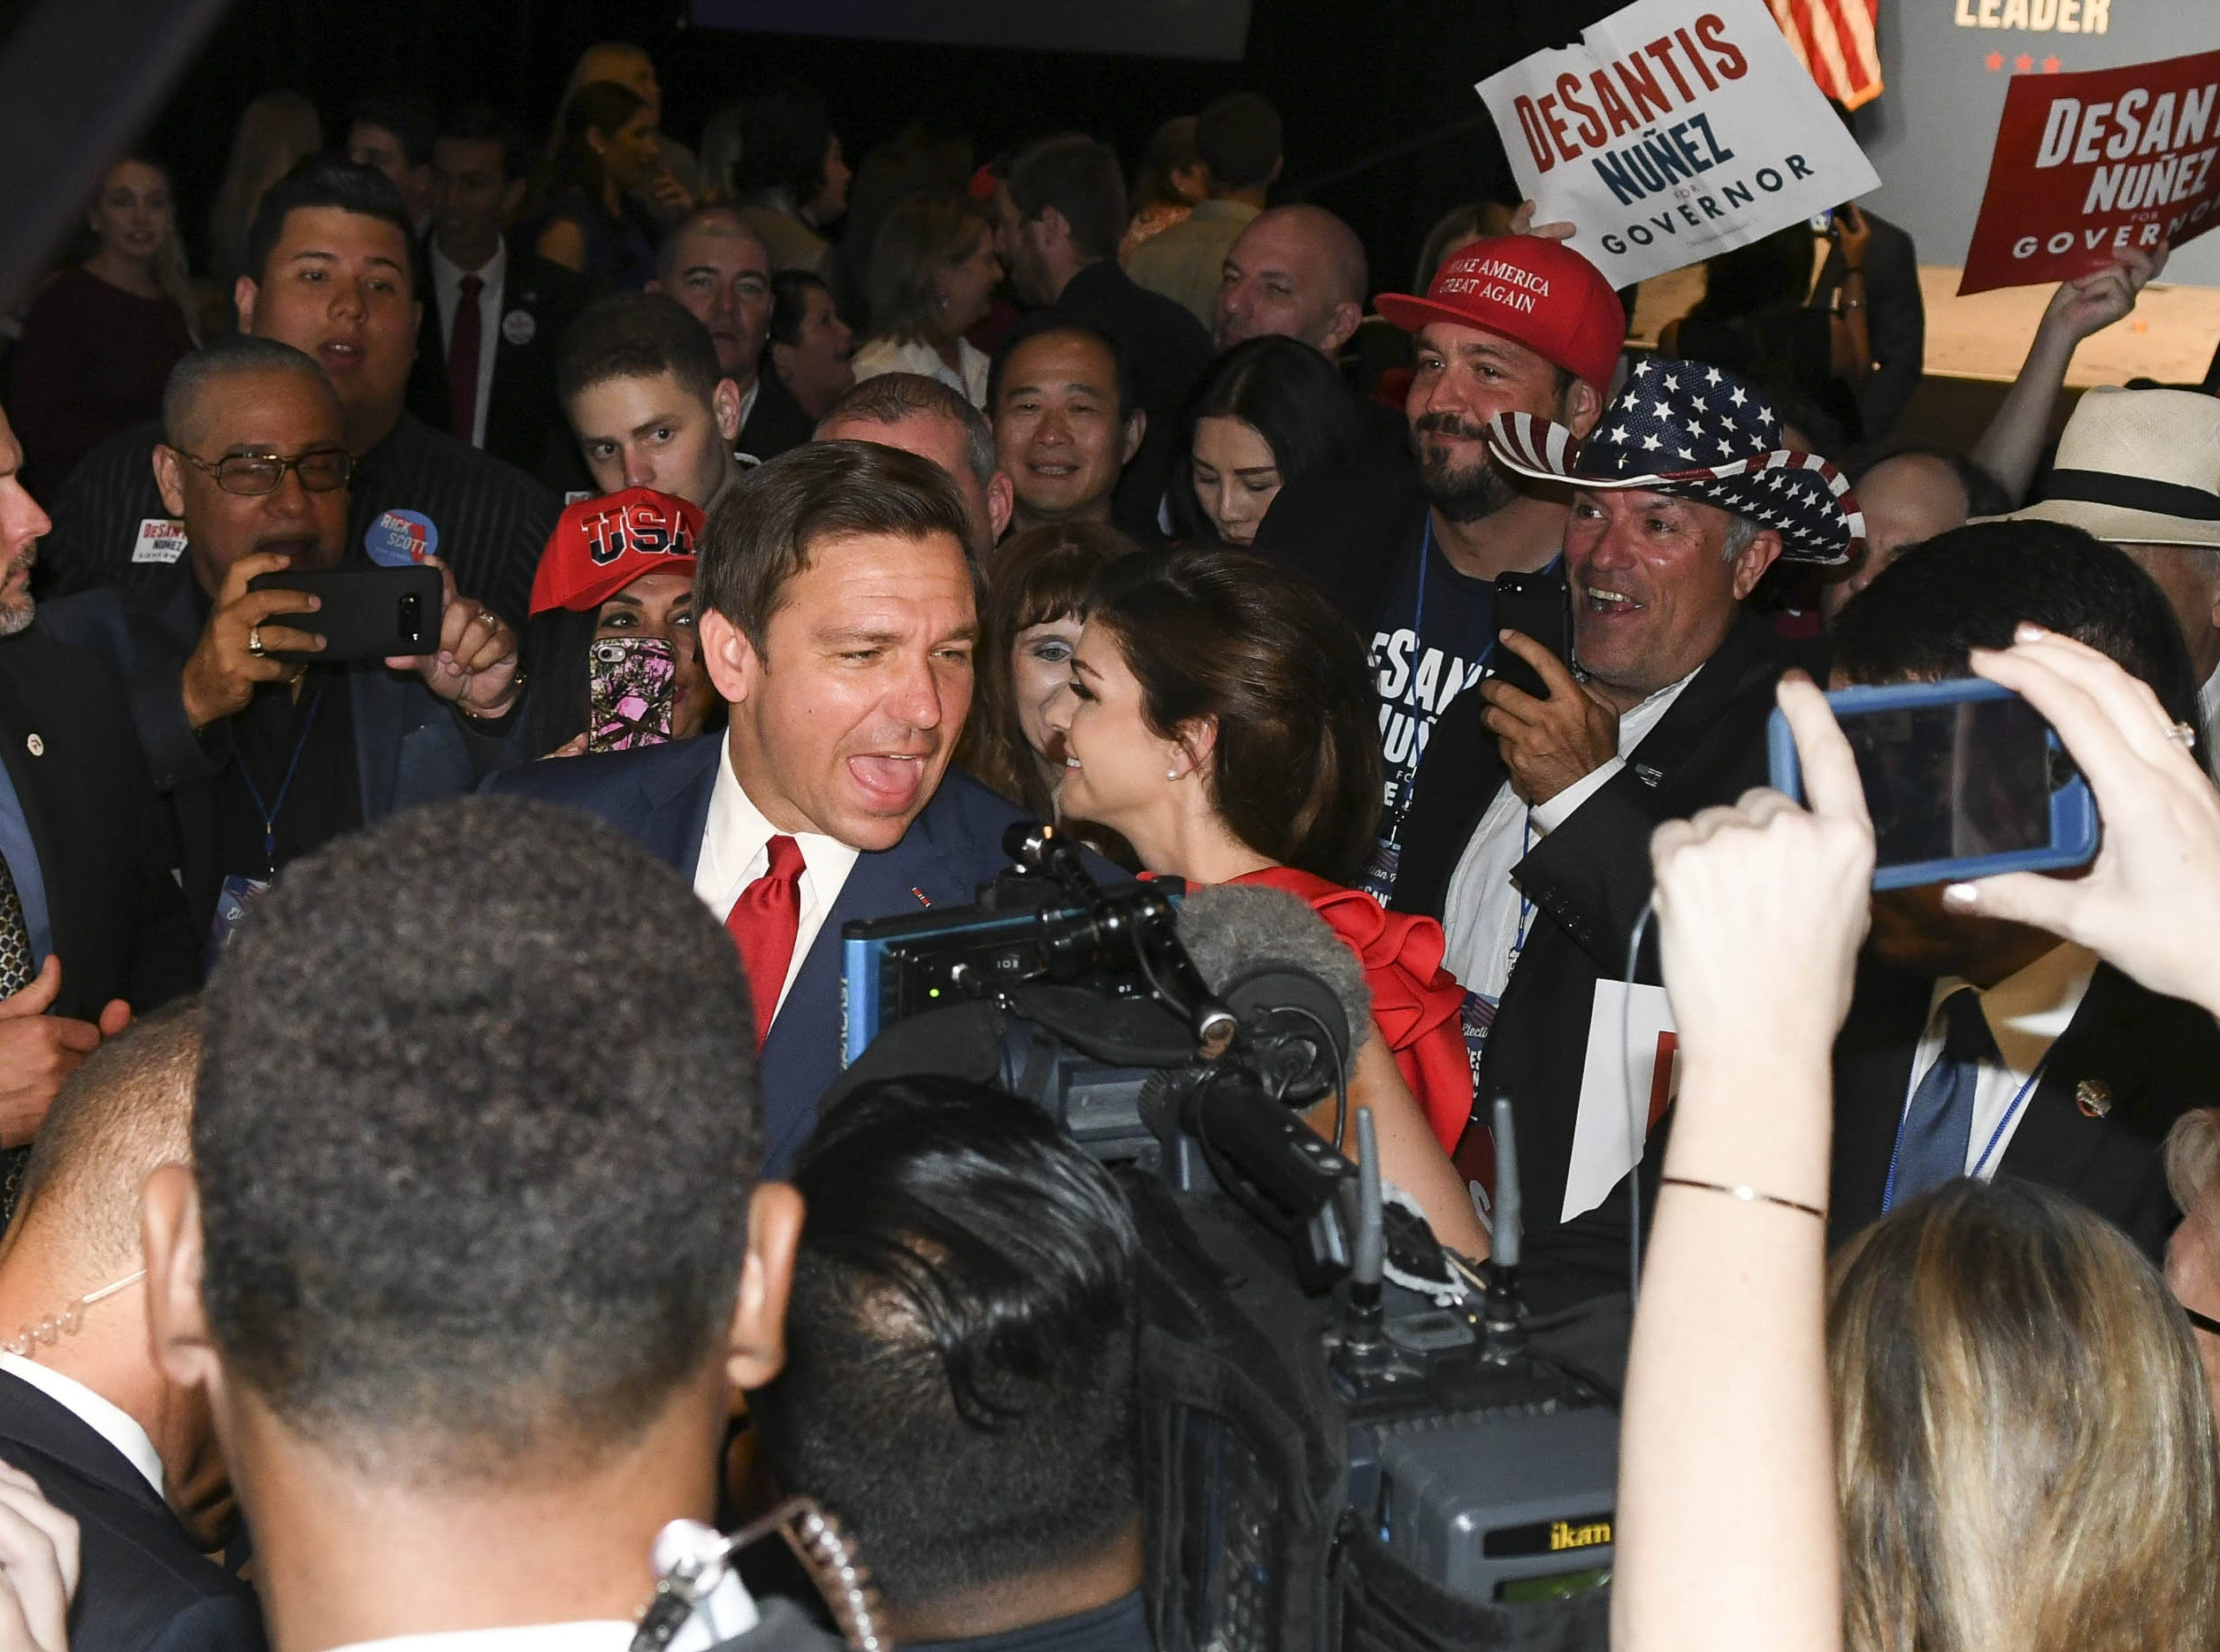 Governor-elect Ron DeSantis and his wife greets supporters after his victory Tuesday.